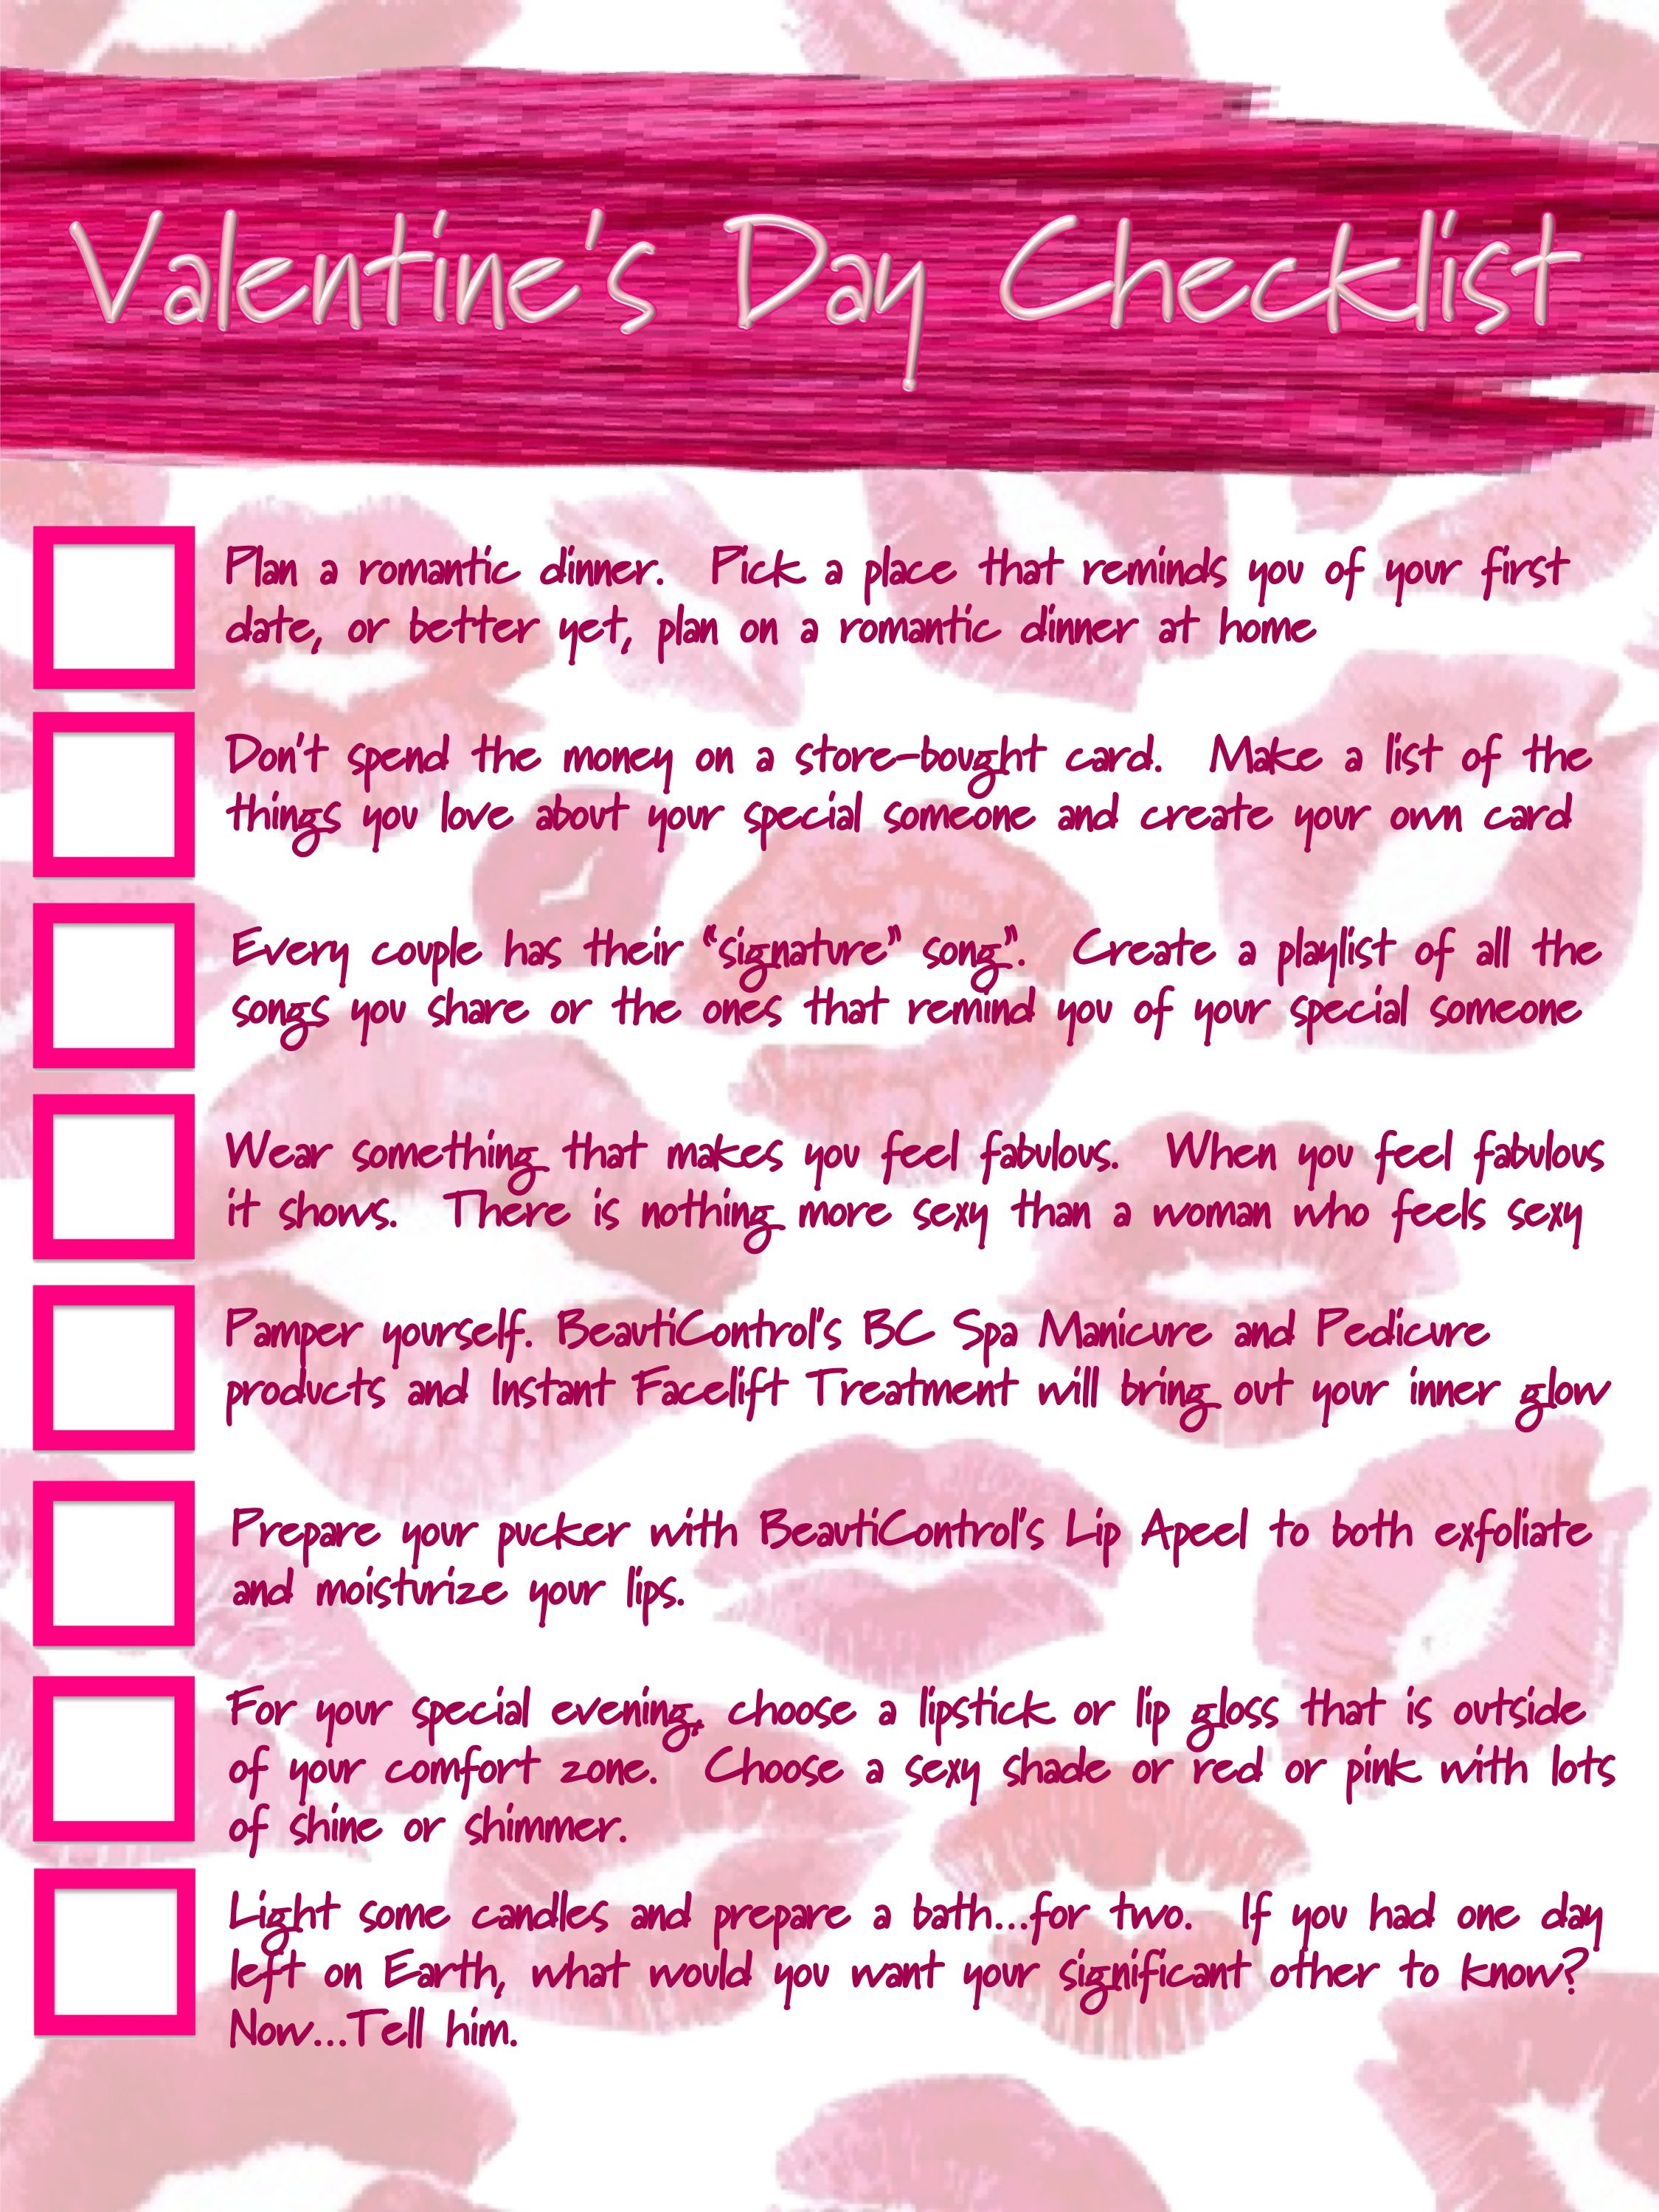 beauticontrol valentines - Google Search   Beauticontrol: Holidays ...